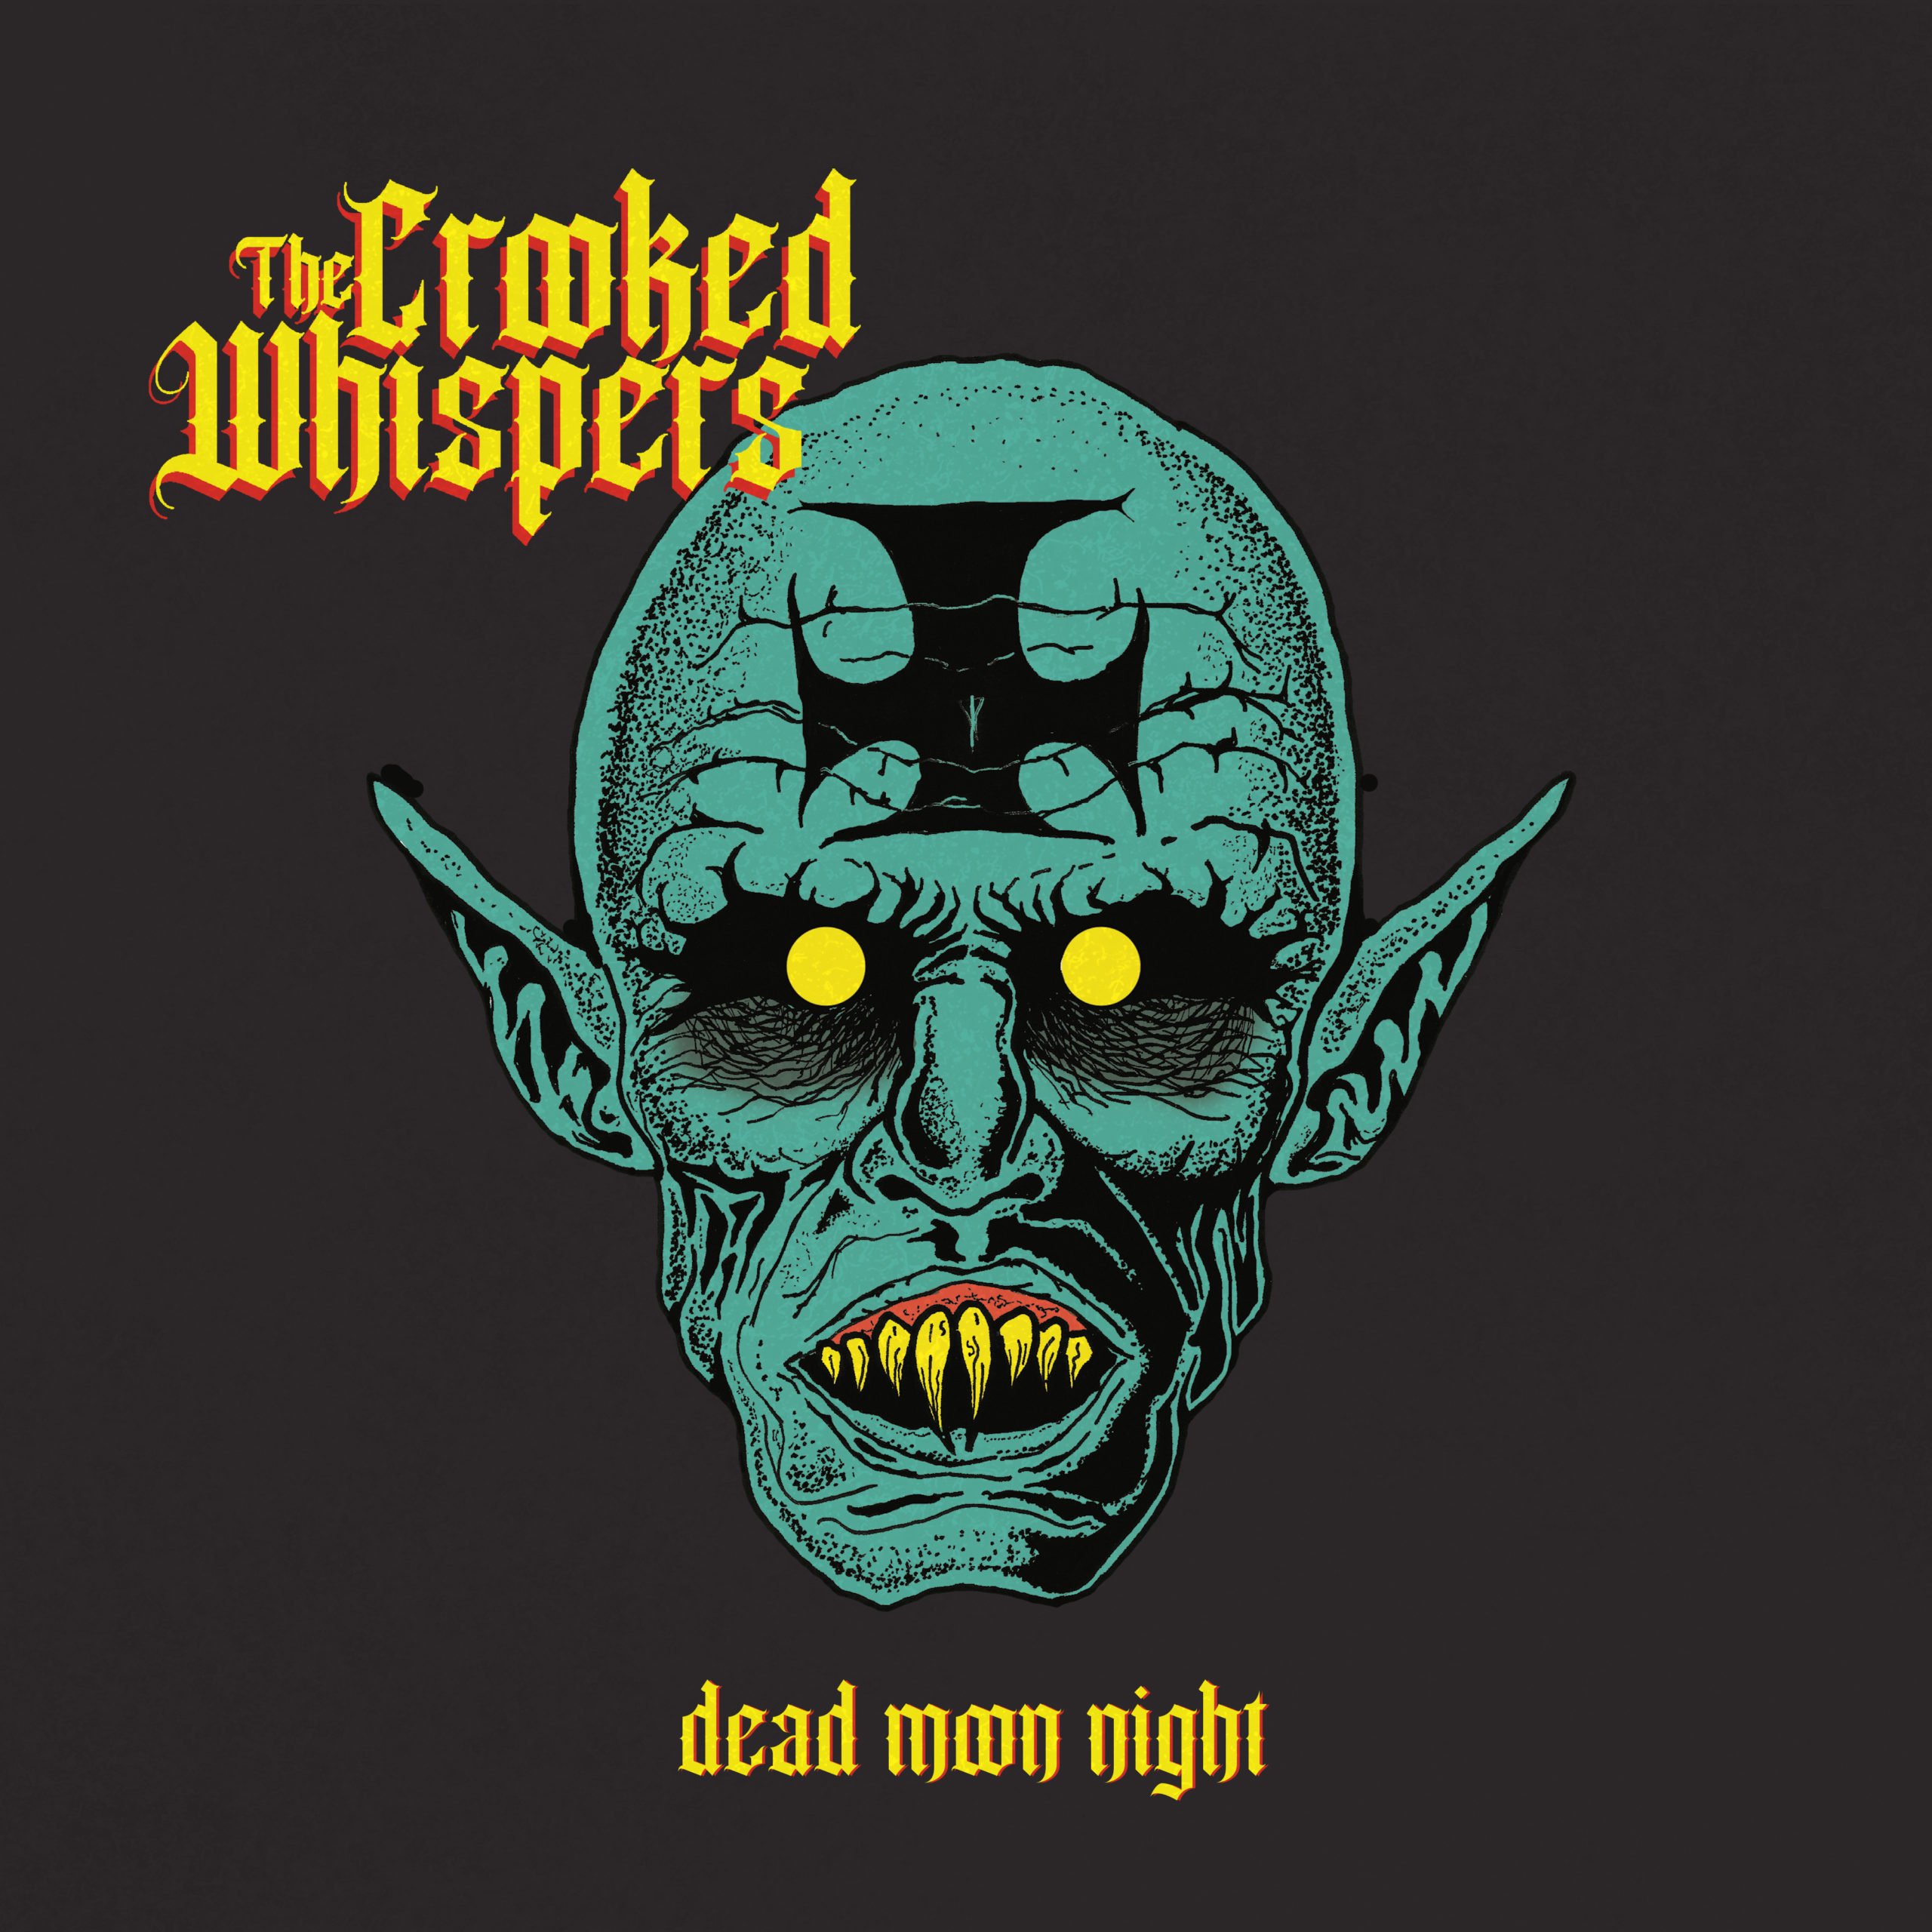 The Crooked Whispers Dead Moon Night